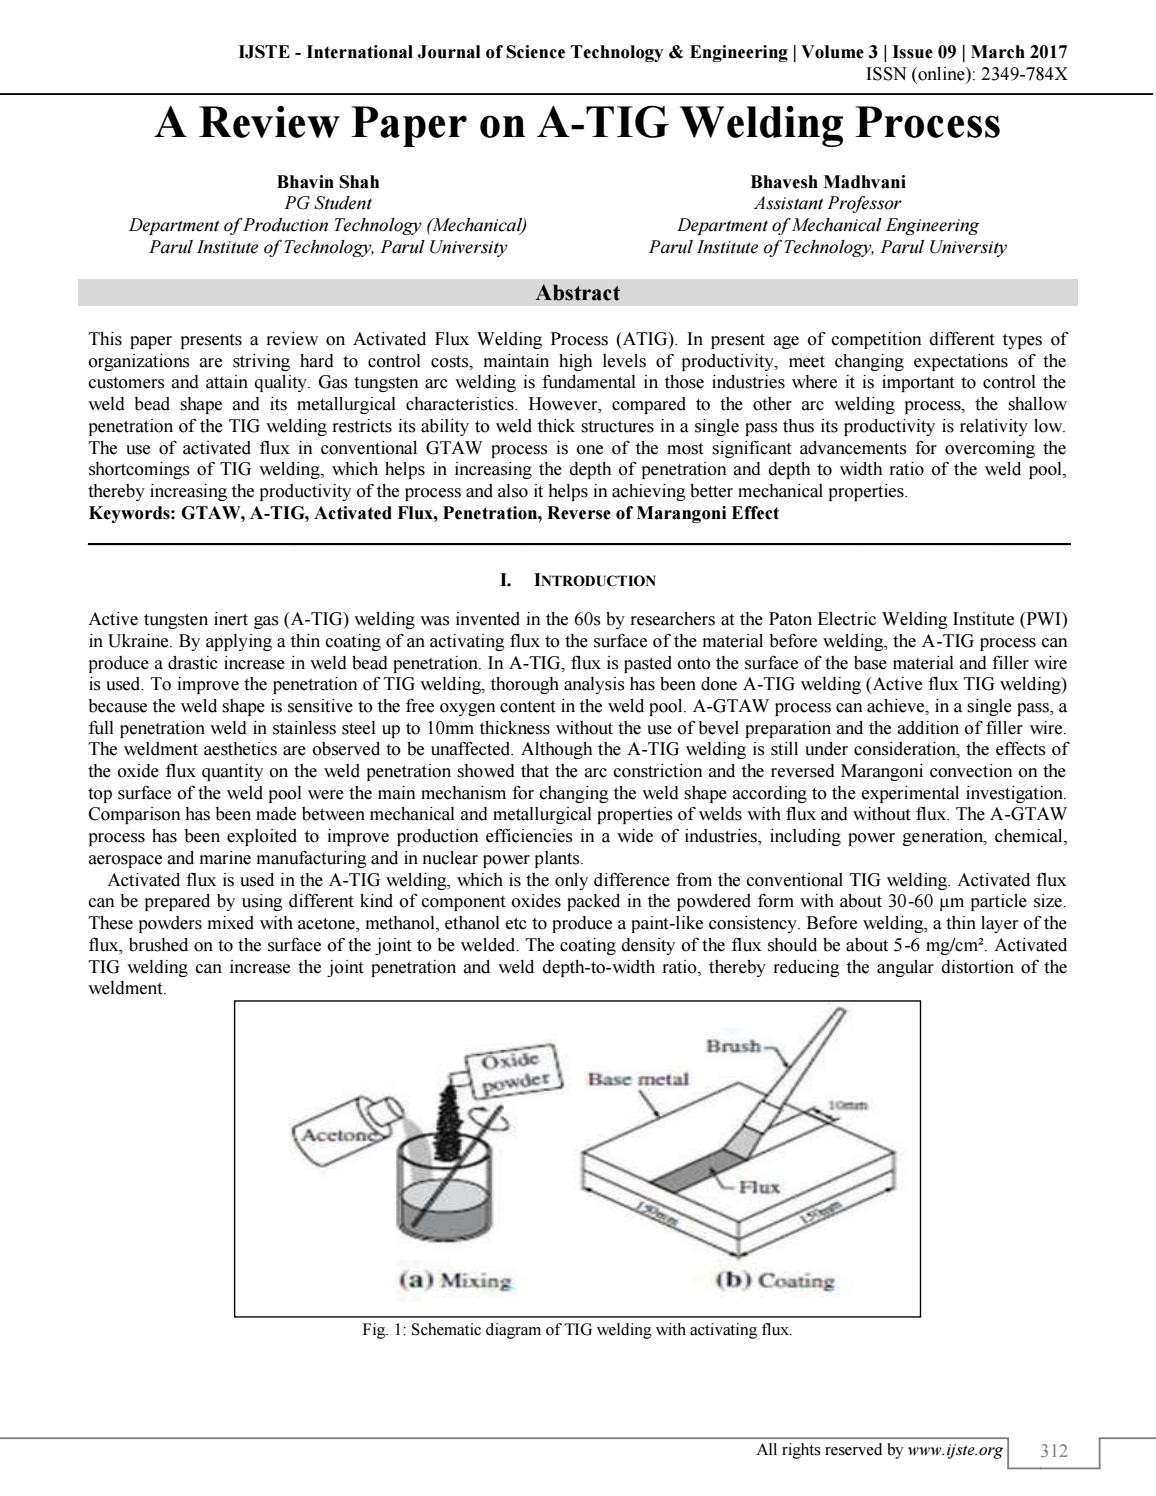 A Review Paper On Tig Welding Process By International Journal Of Diagram Science Technology And Engineering Issuu